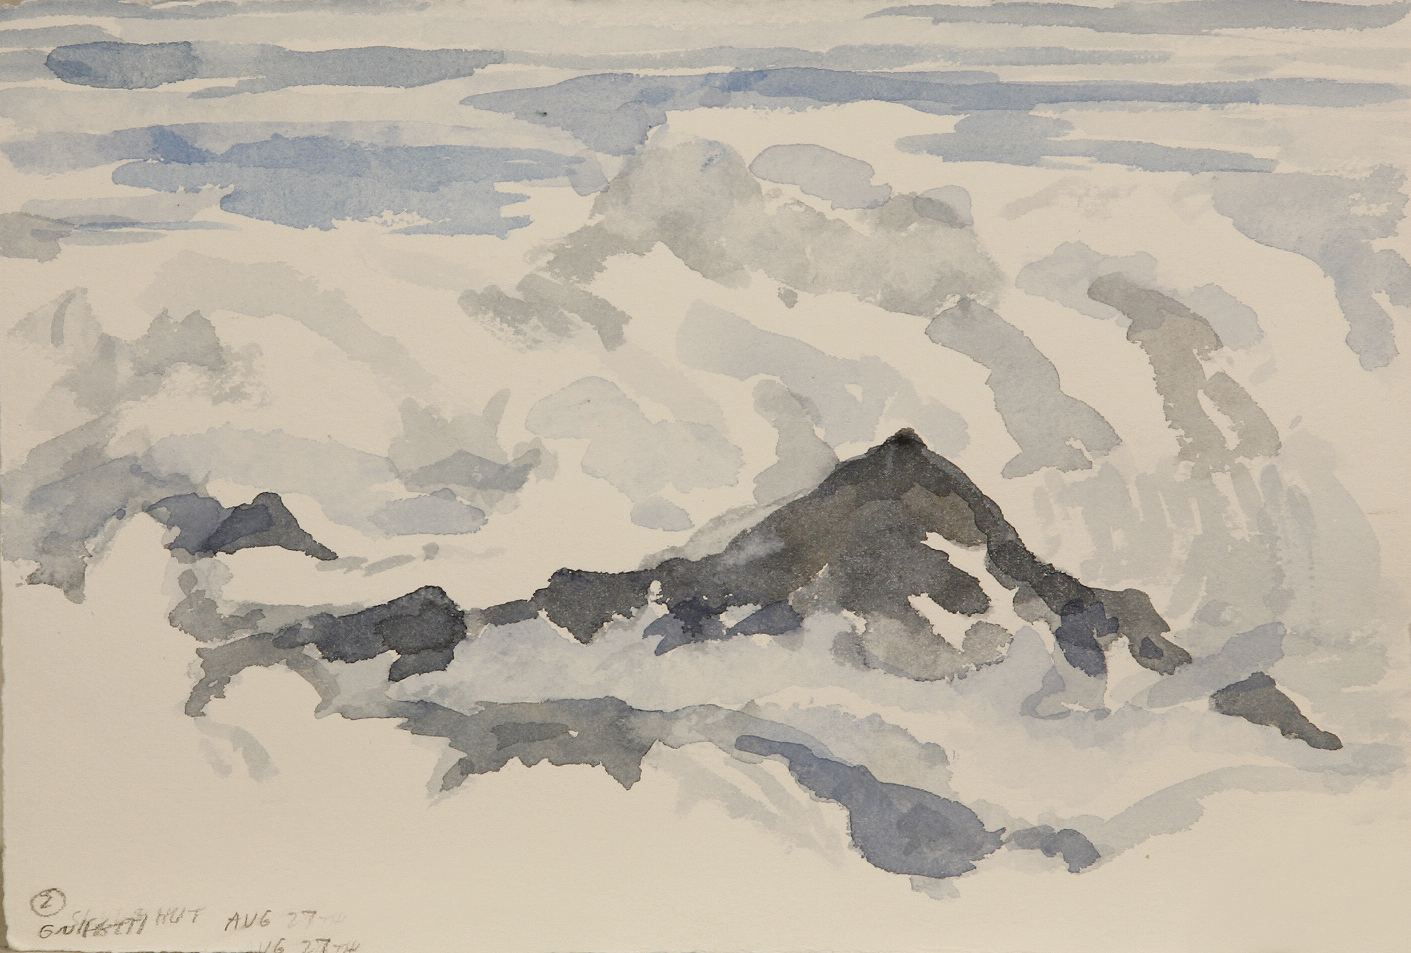 sketch from Gnifetti Hut